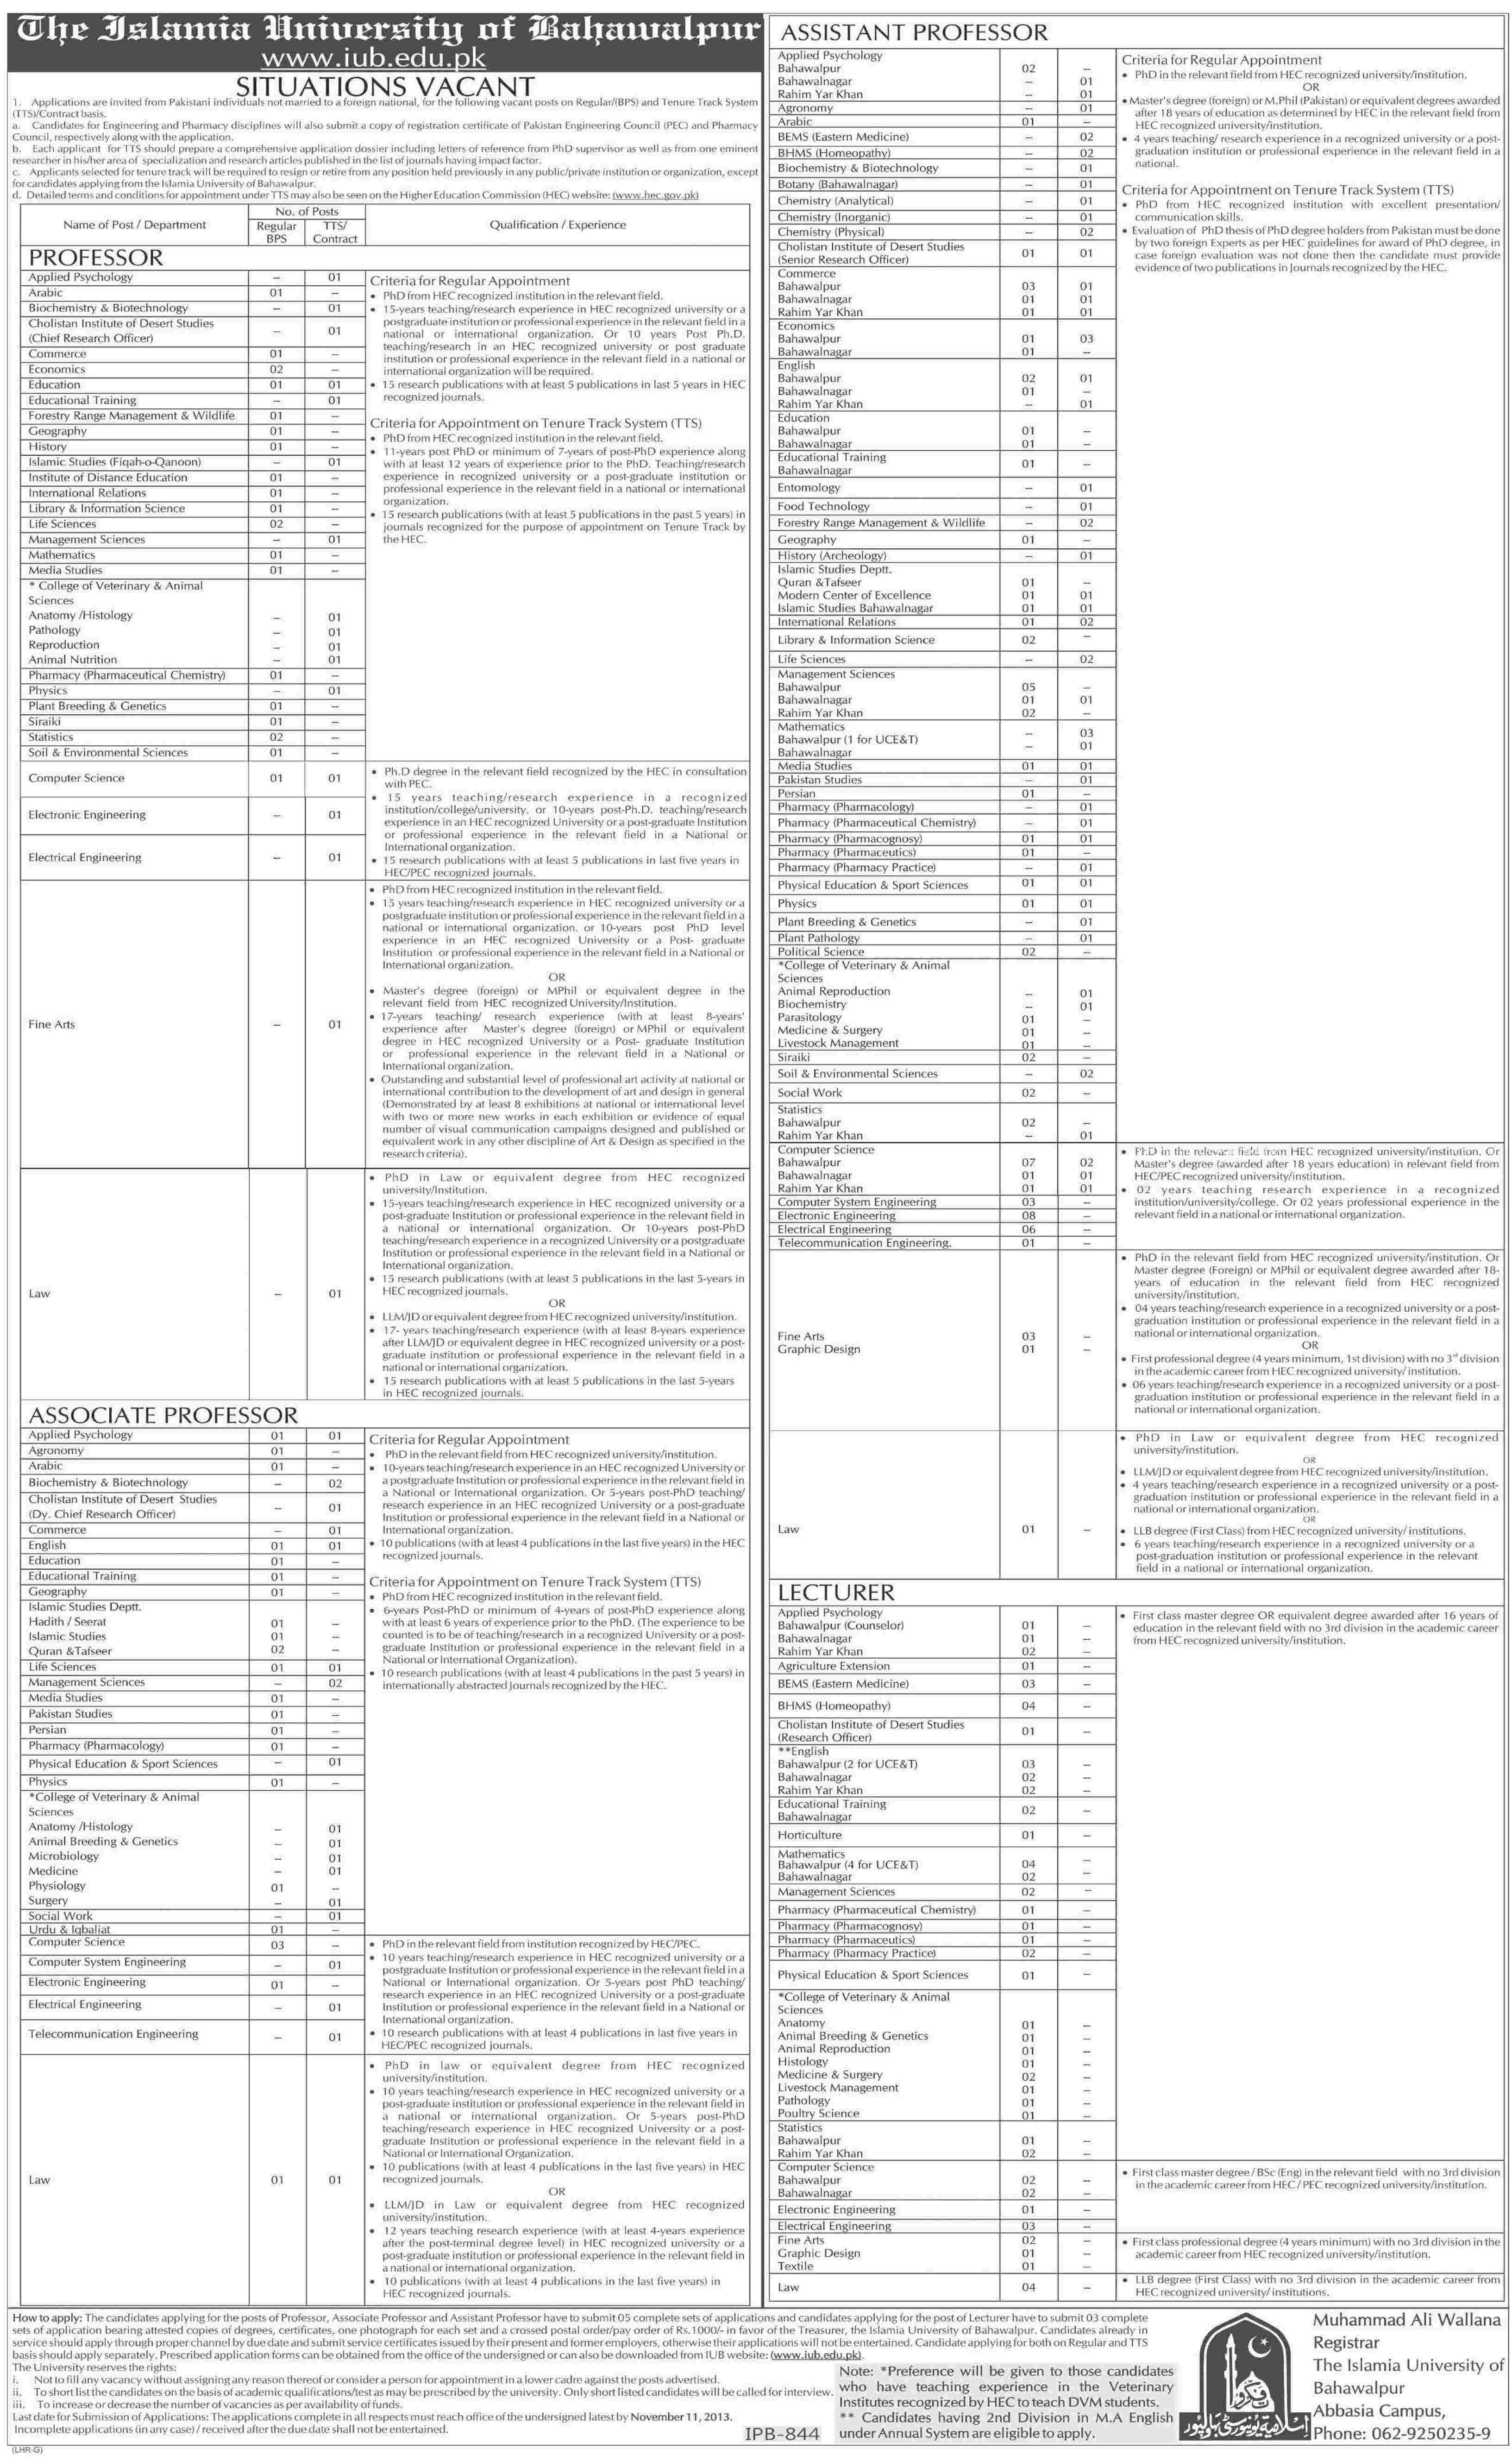 Teaching Staff Required At The Islamia University Of Bahawalapur 2013